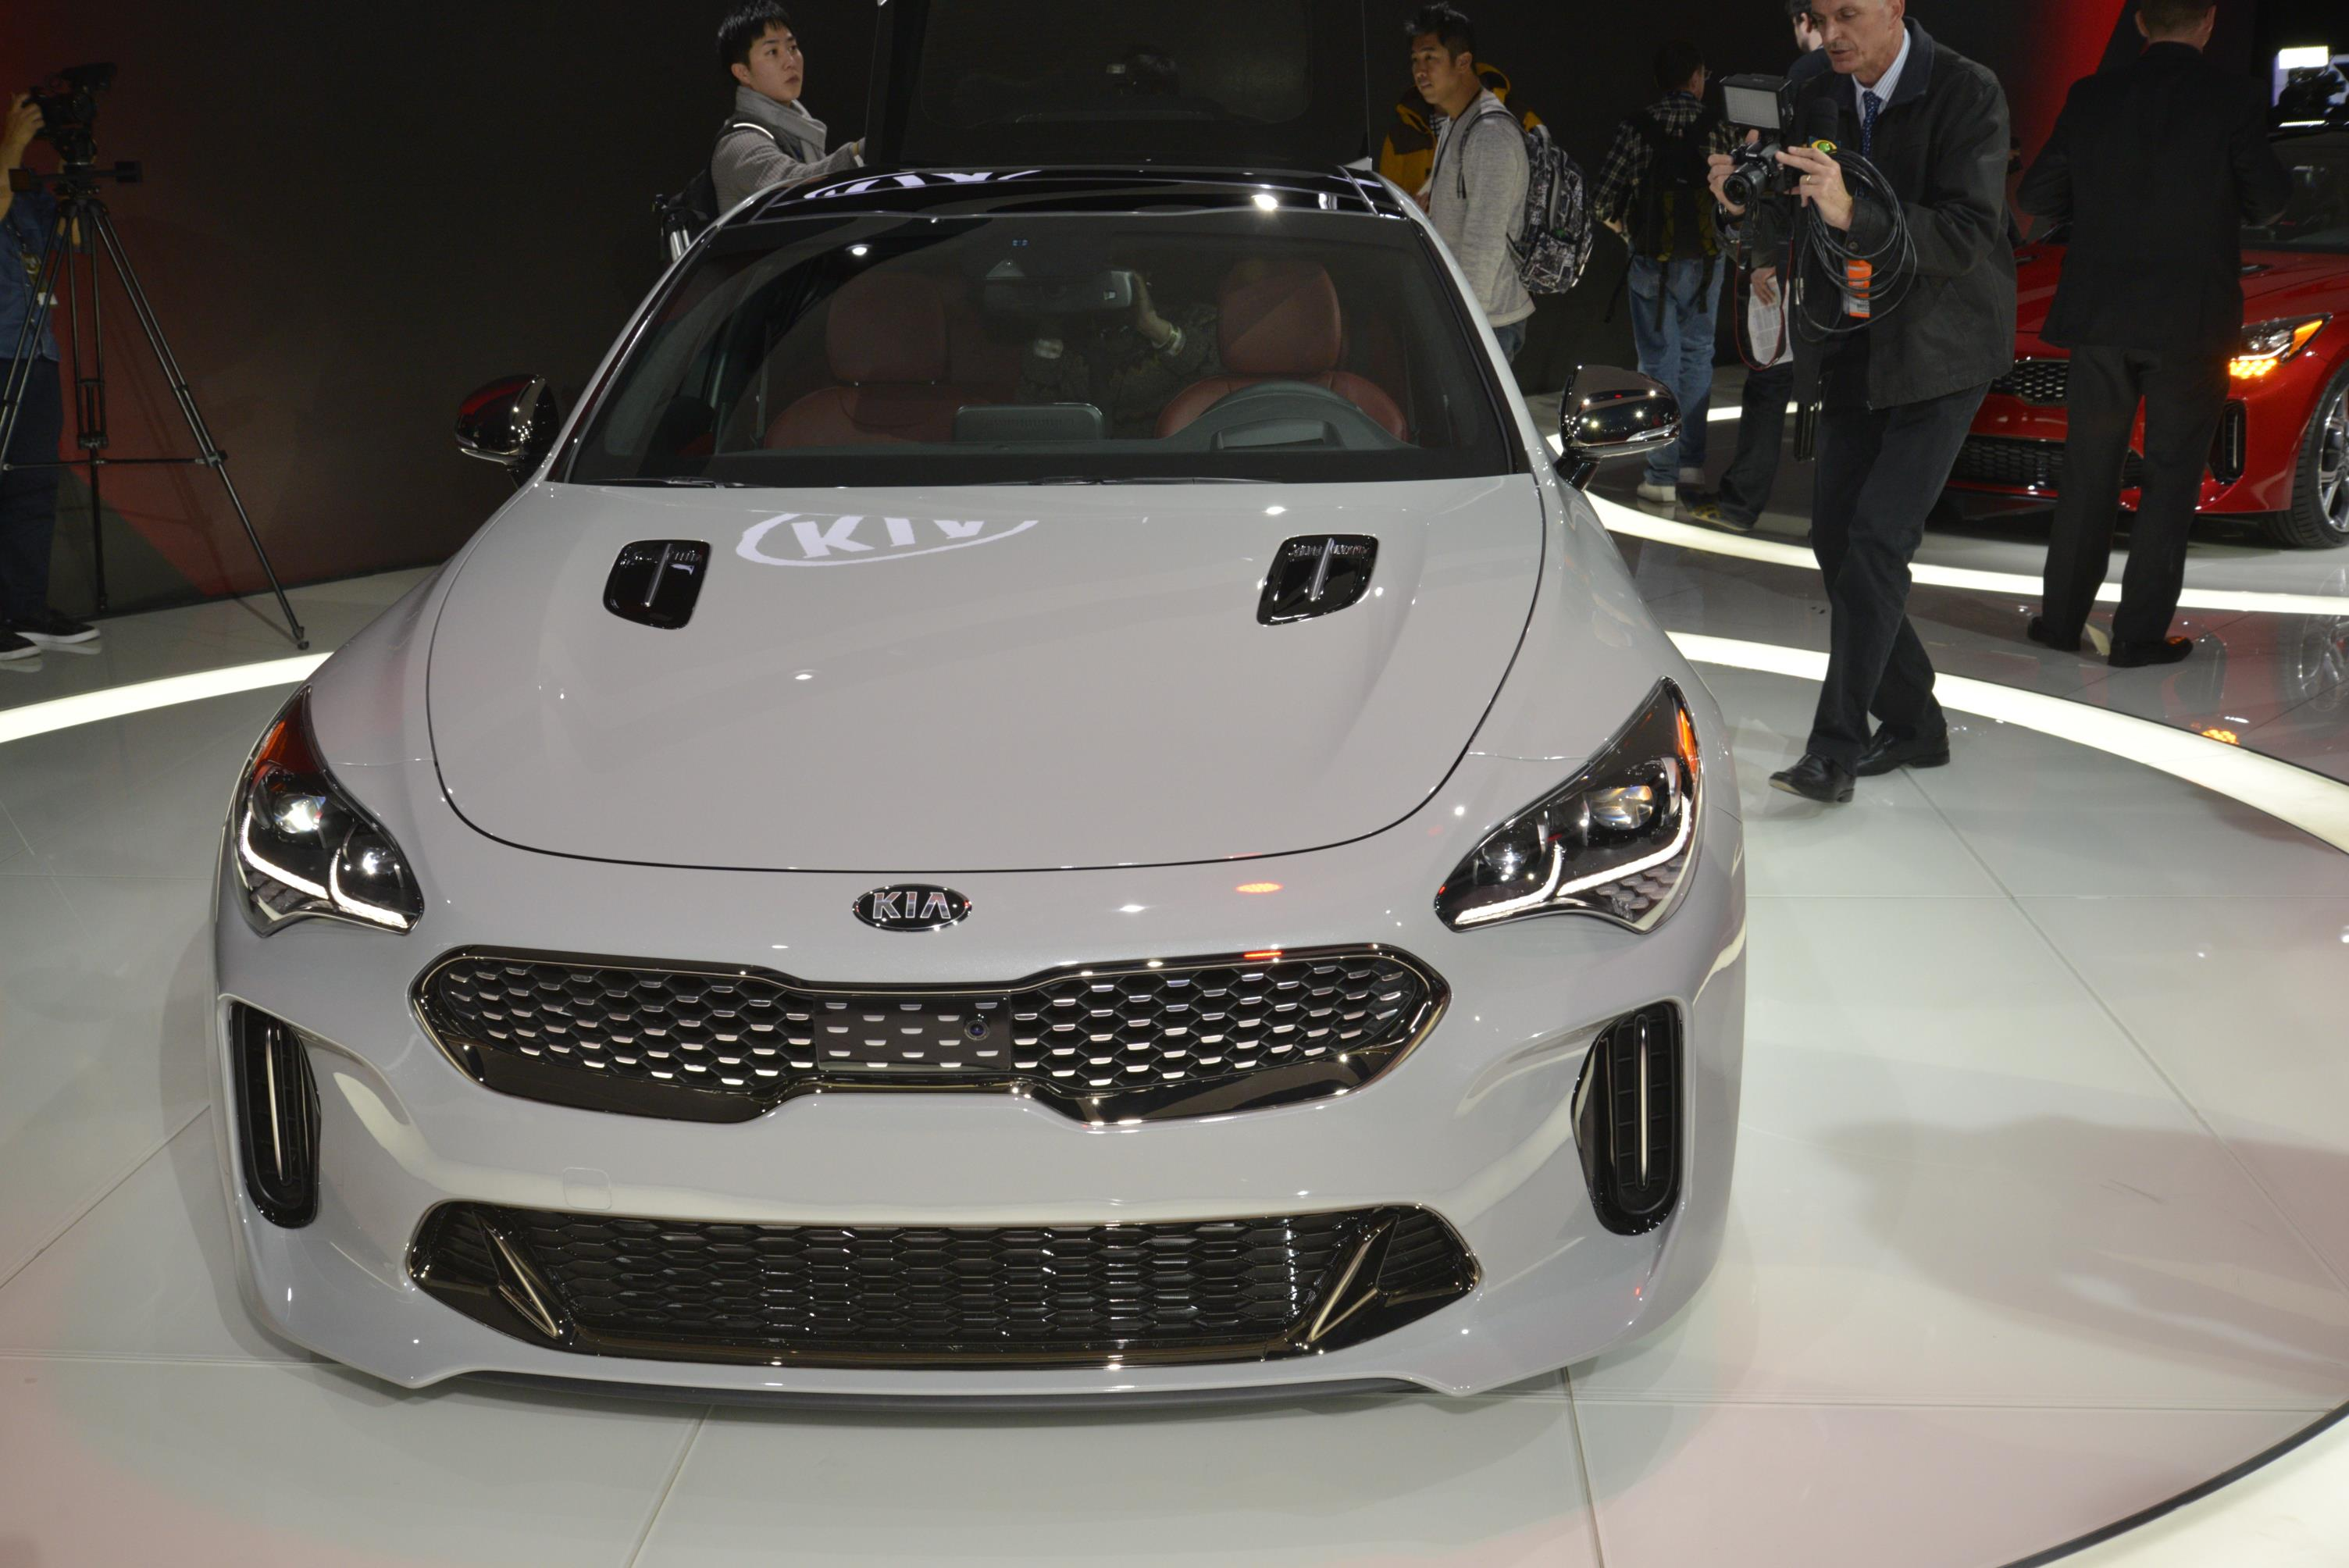 Kia Stinger GT in Detroit (4)